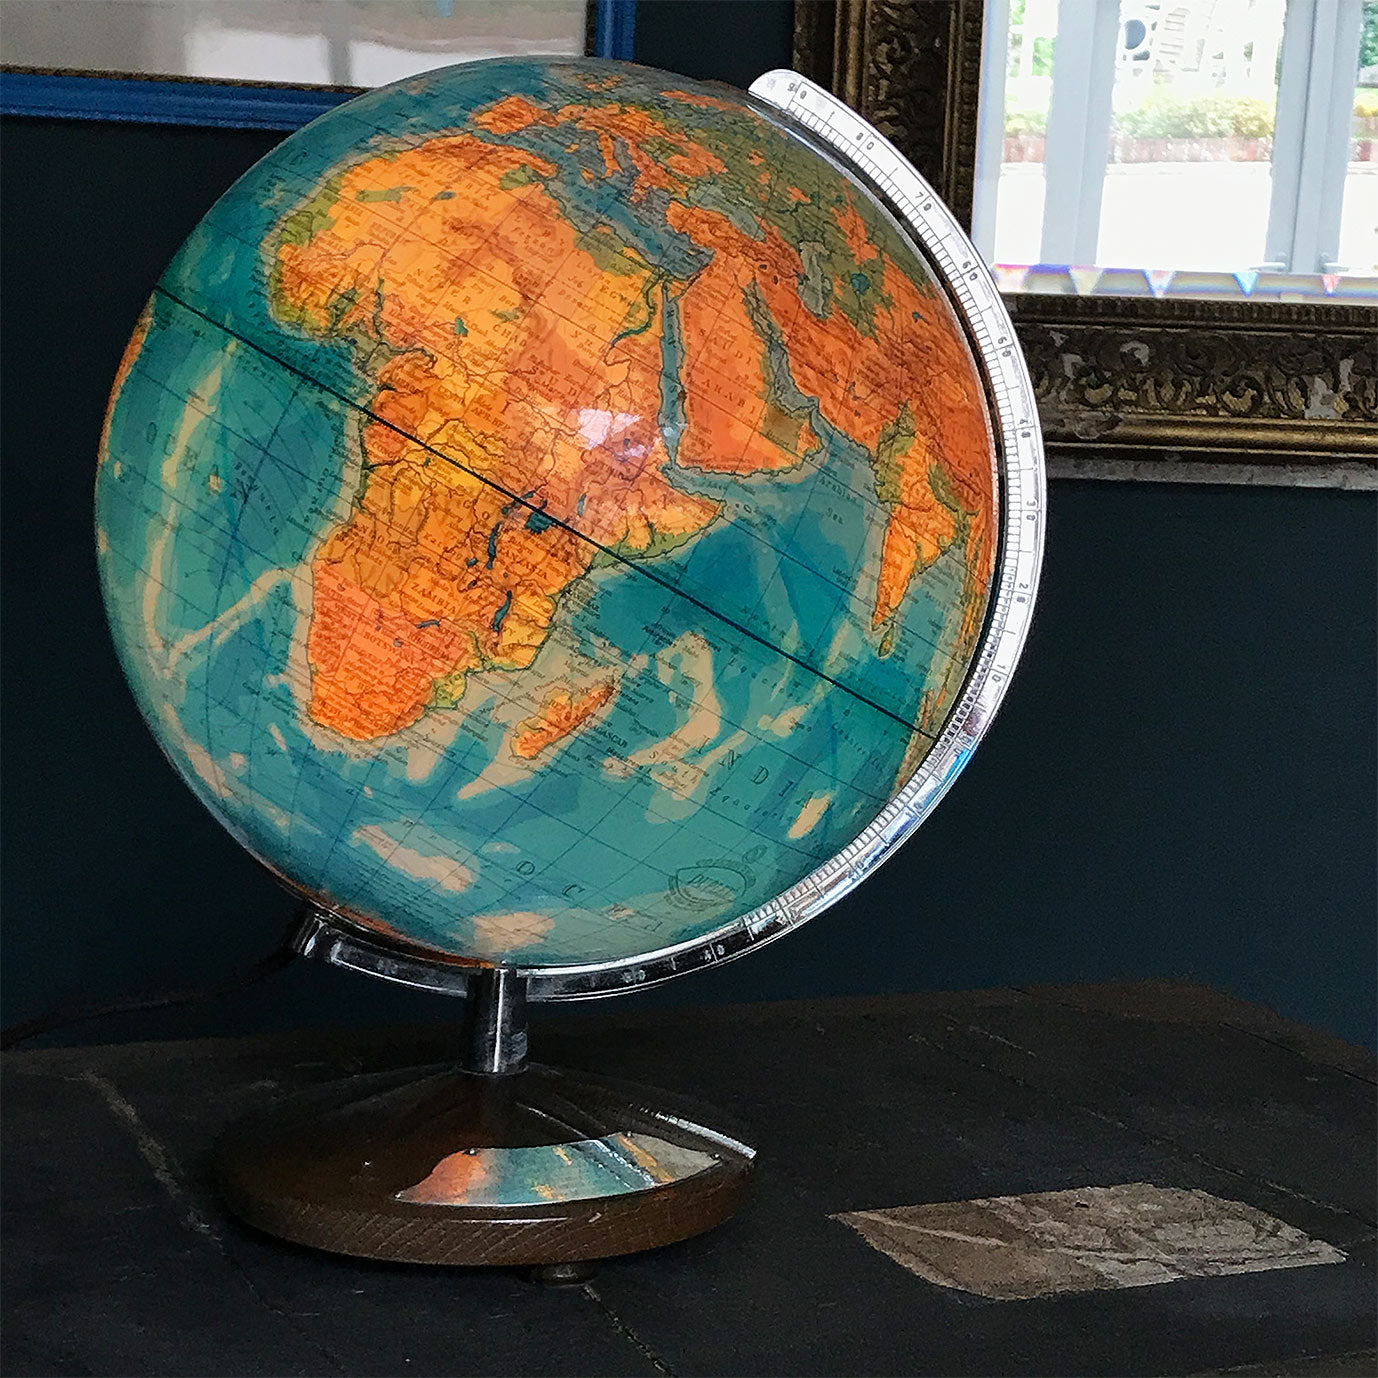 Cool Vintage Illuminated Columbus Globe by German company Paul Oestergaard of Berlin and Stuttgart - SHOP NOW - www.intovintage.co.uk